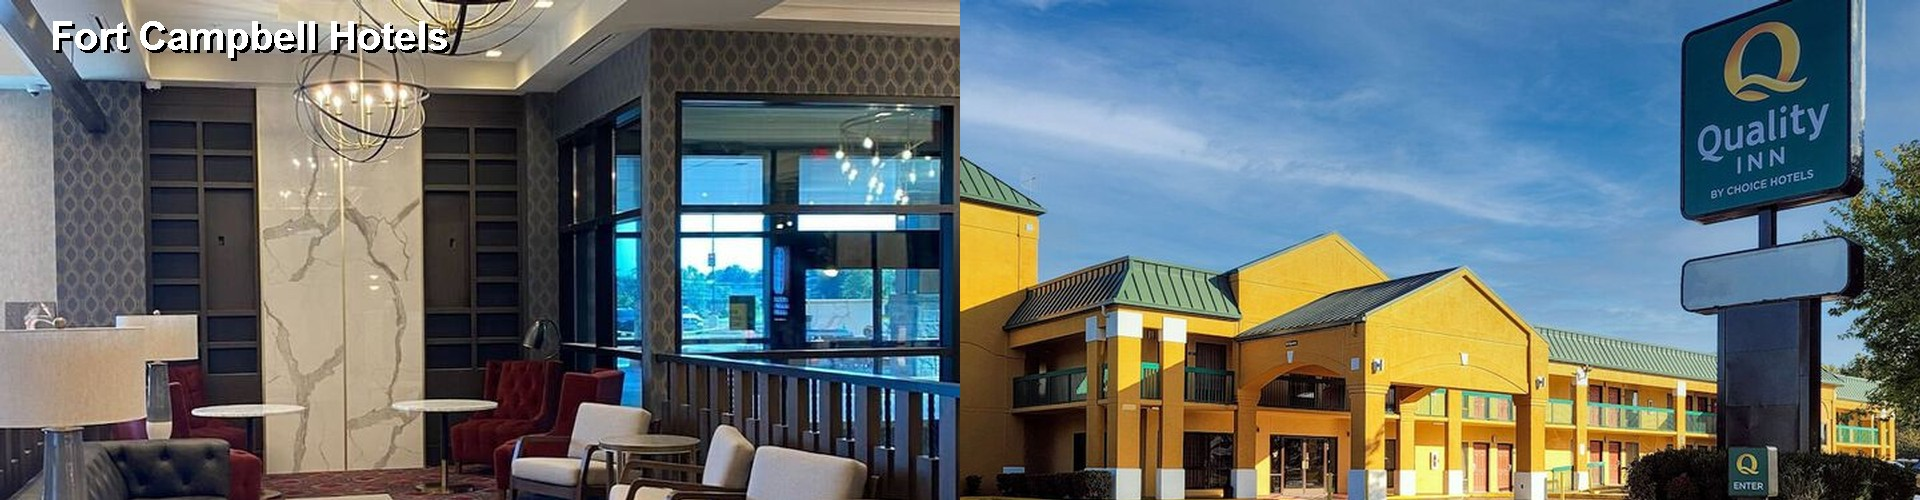 5 Best Hotels near Fort Campbell